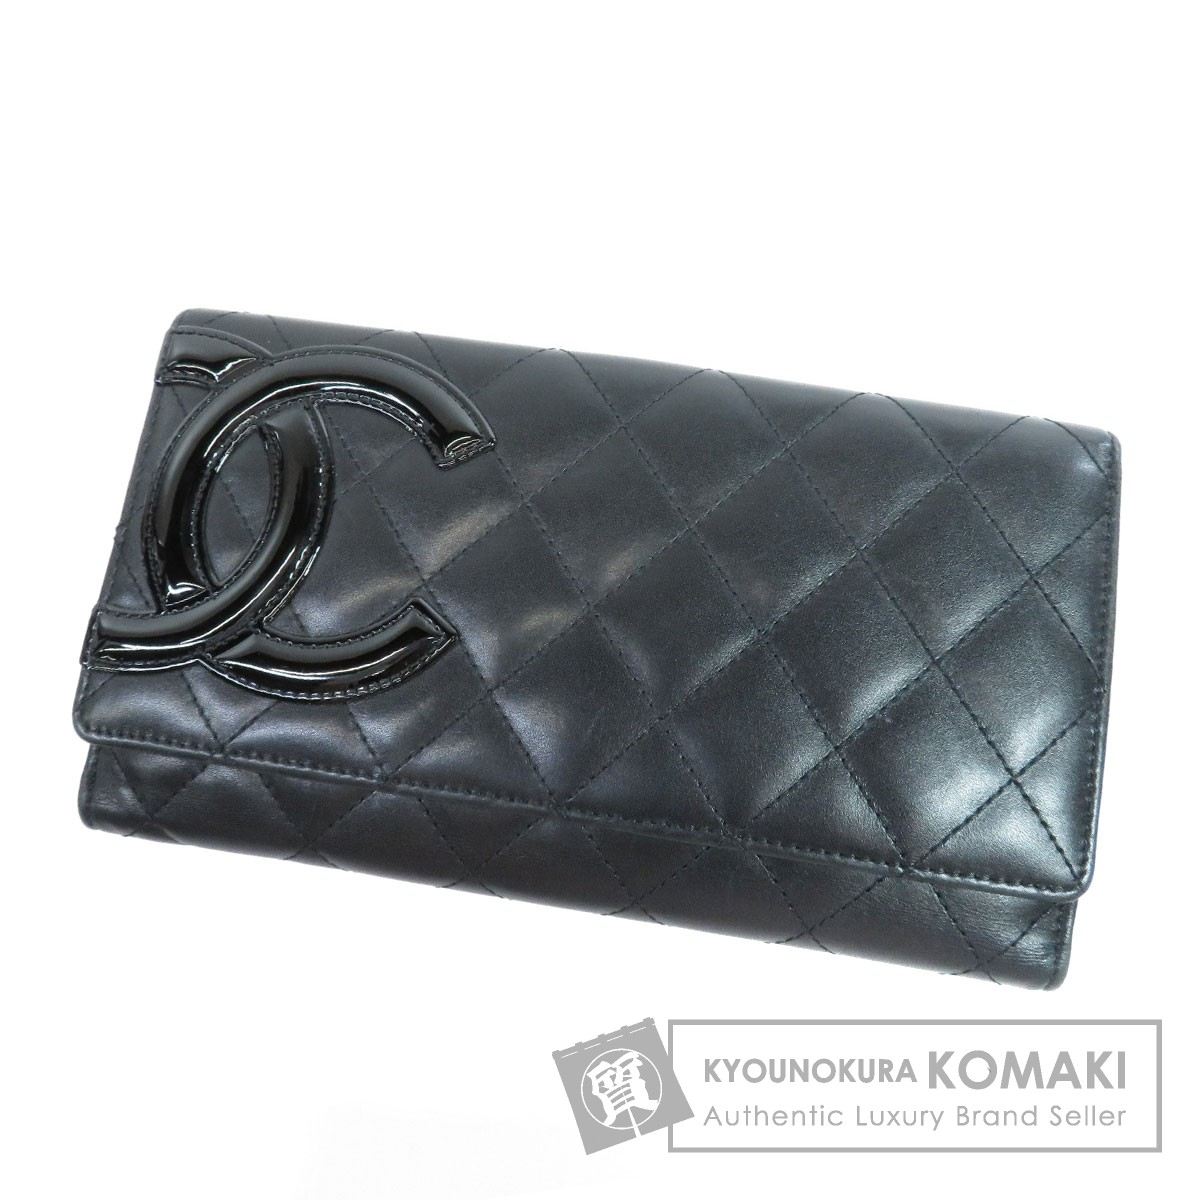 f19f85d98cf8 Kyonokura Komaki Brand Cheapest Challenger: Authentic CHANEL ...